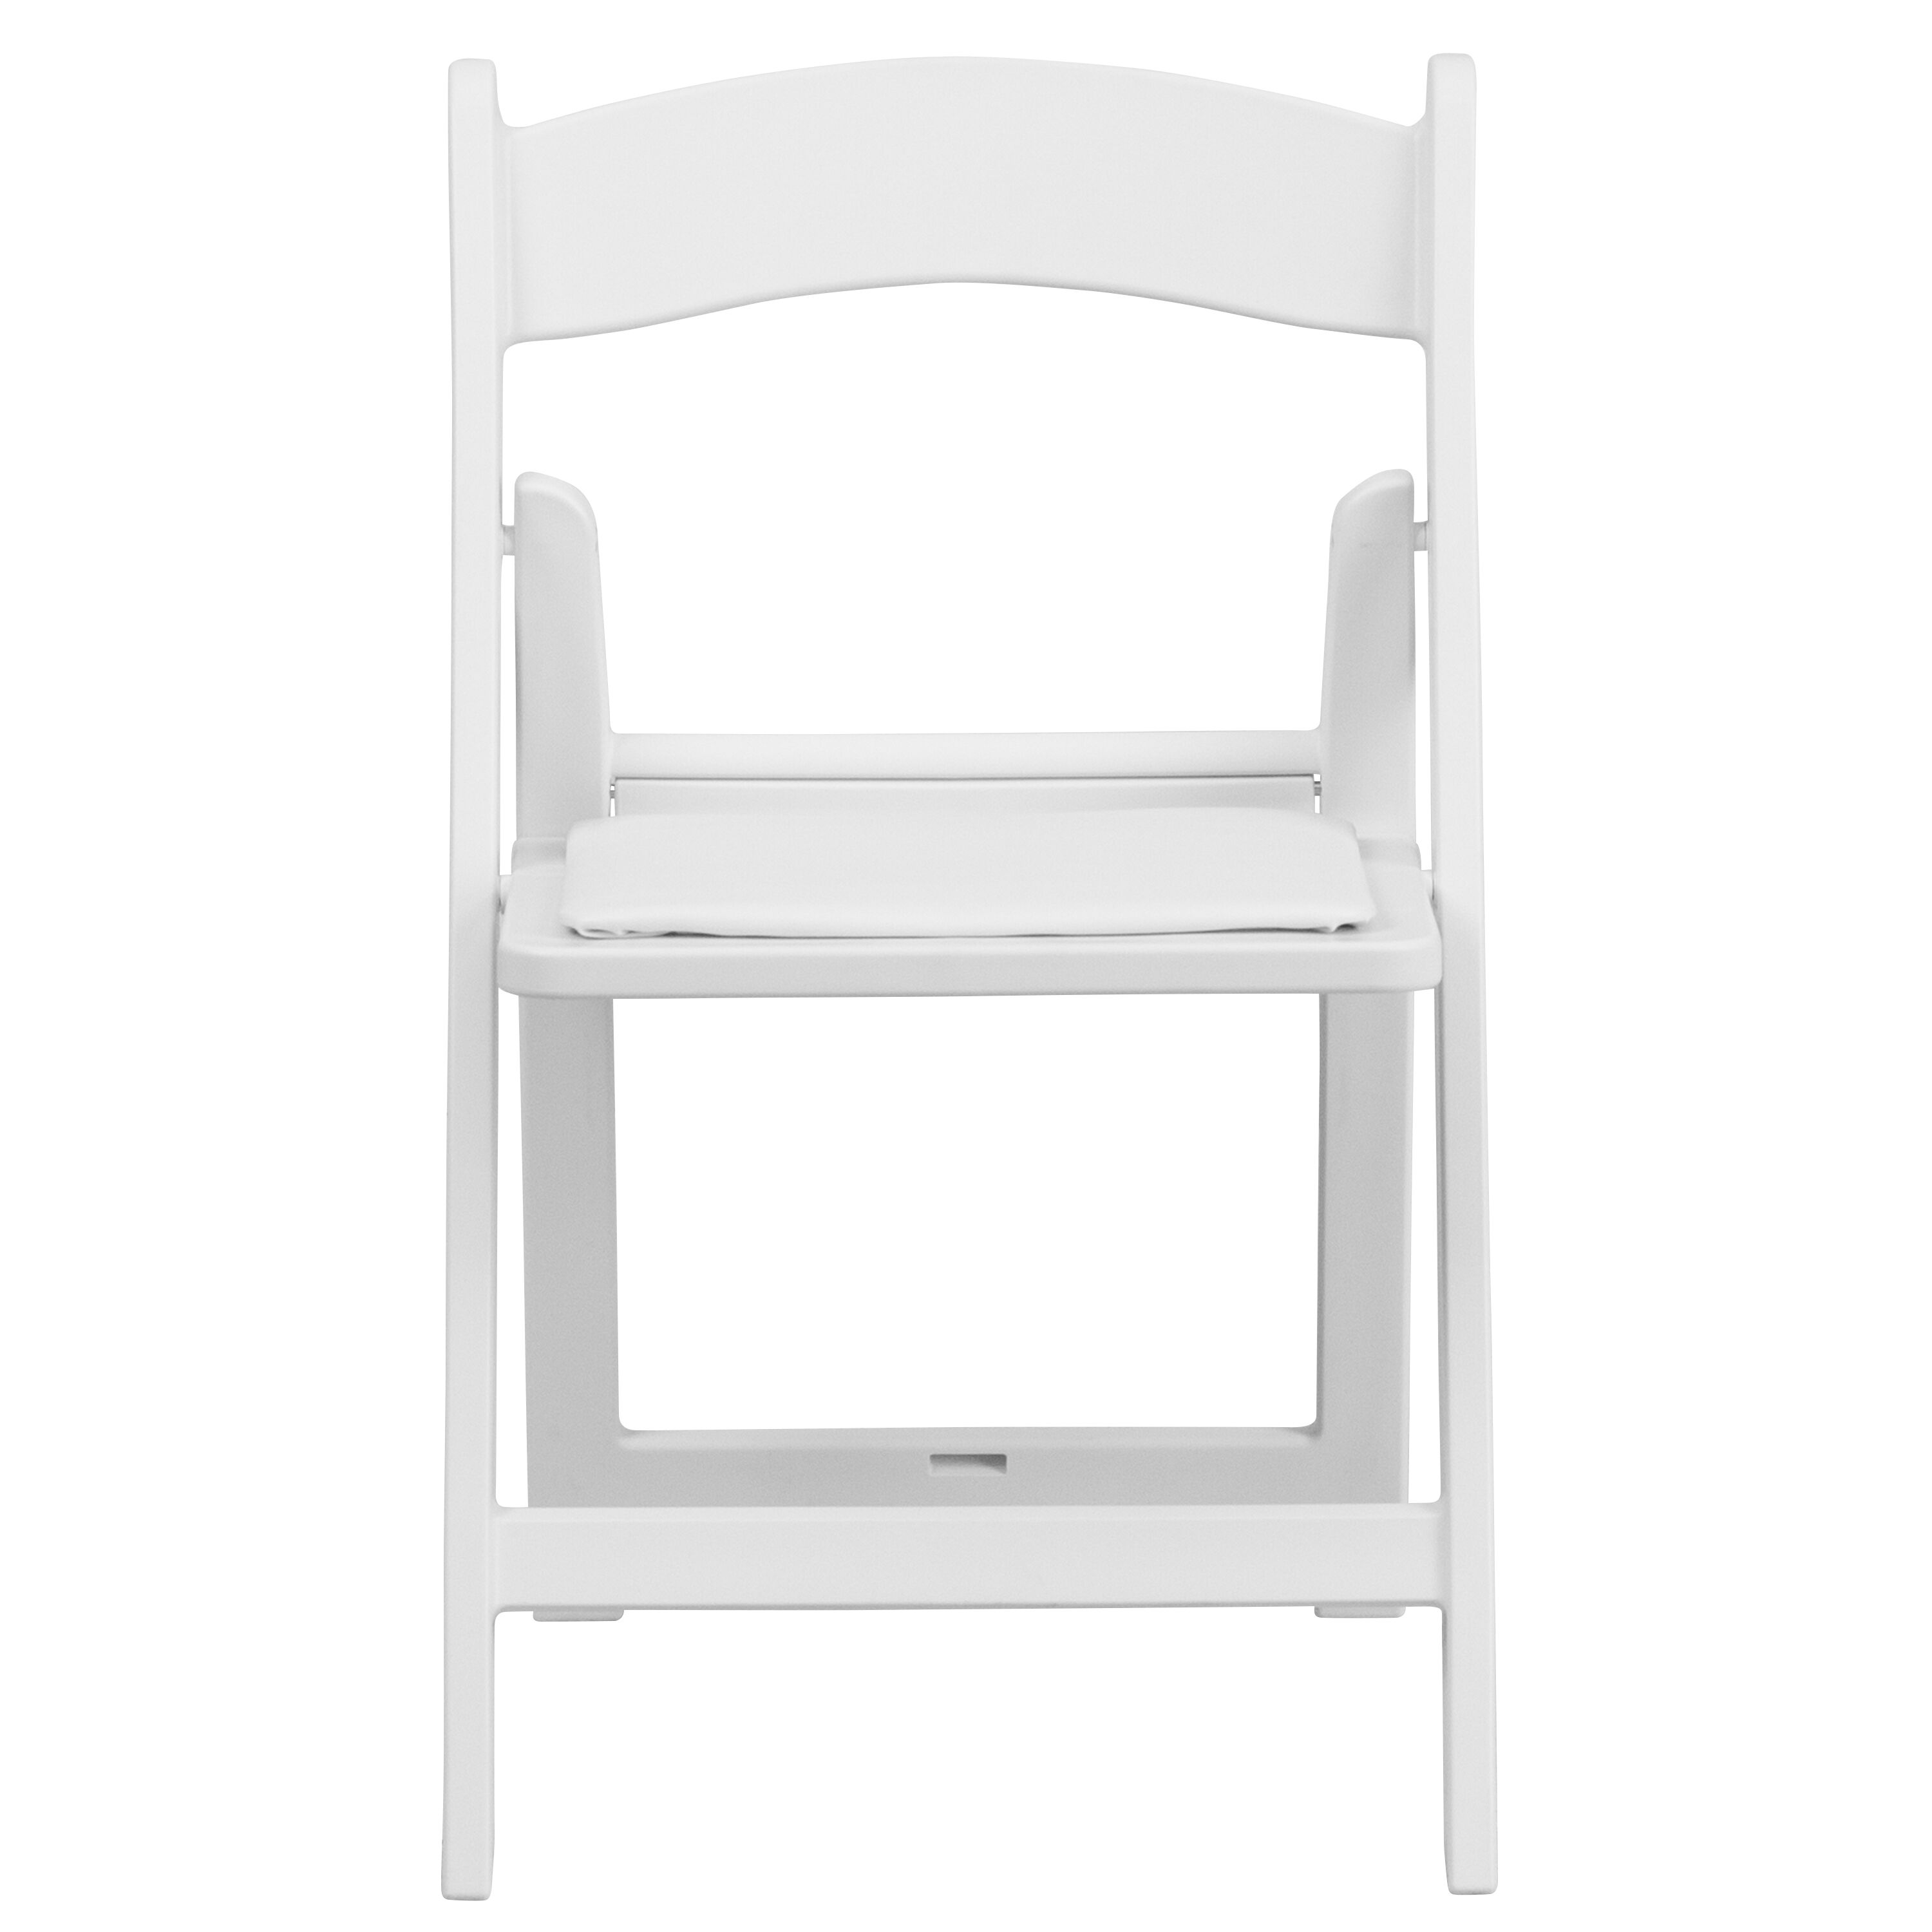 resin folding chairs for sale office chair wheel base kids white le l 1k gg bestchiavarichairs com our with vinyl padded seat is on now